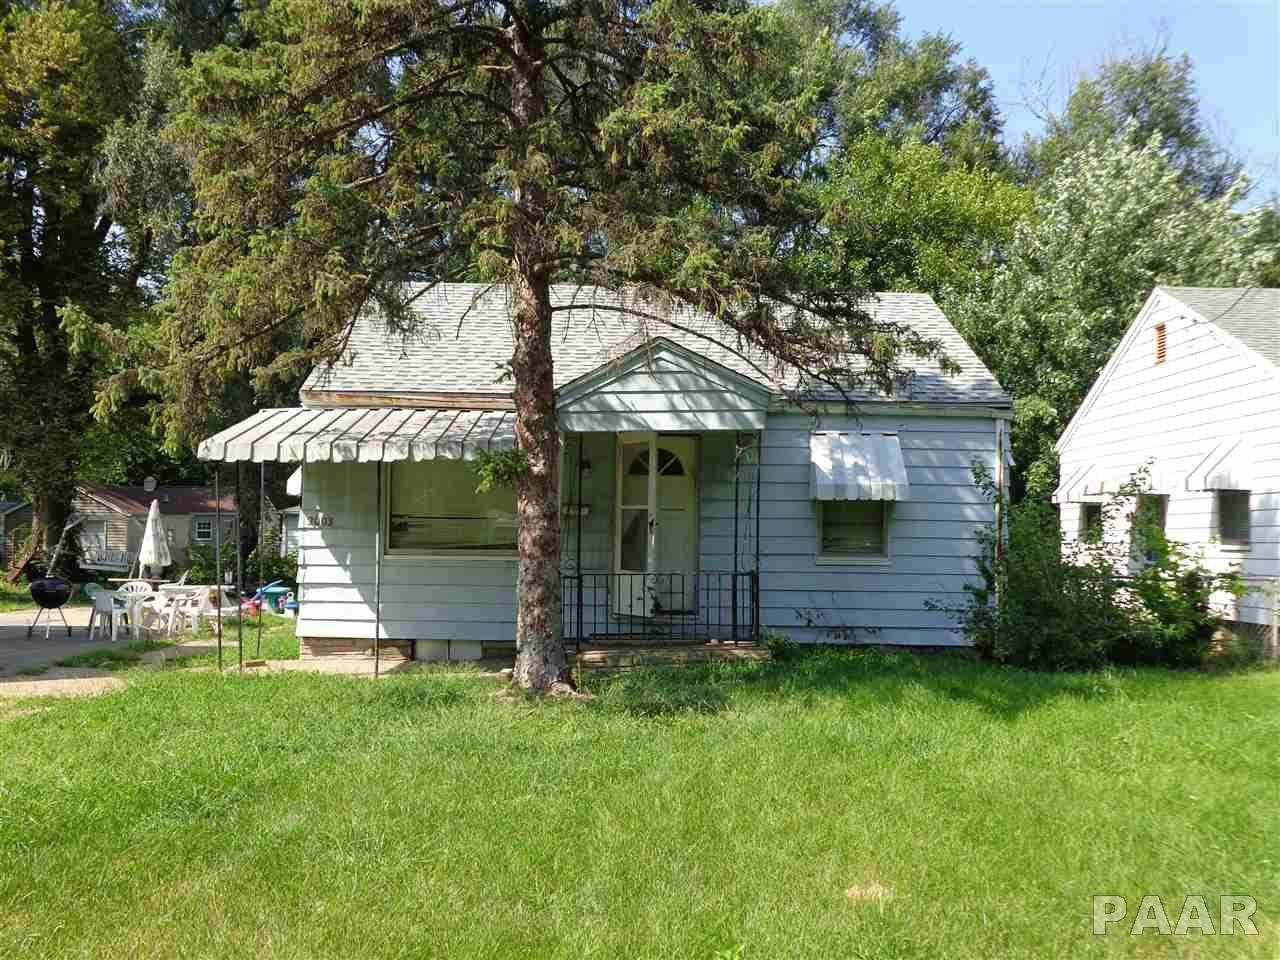 $10,000 - 2Br/1Ba -  for Sale in Martin - Kettelle, Peoria